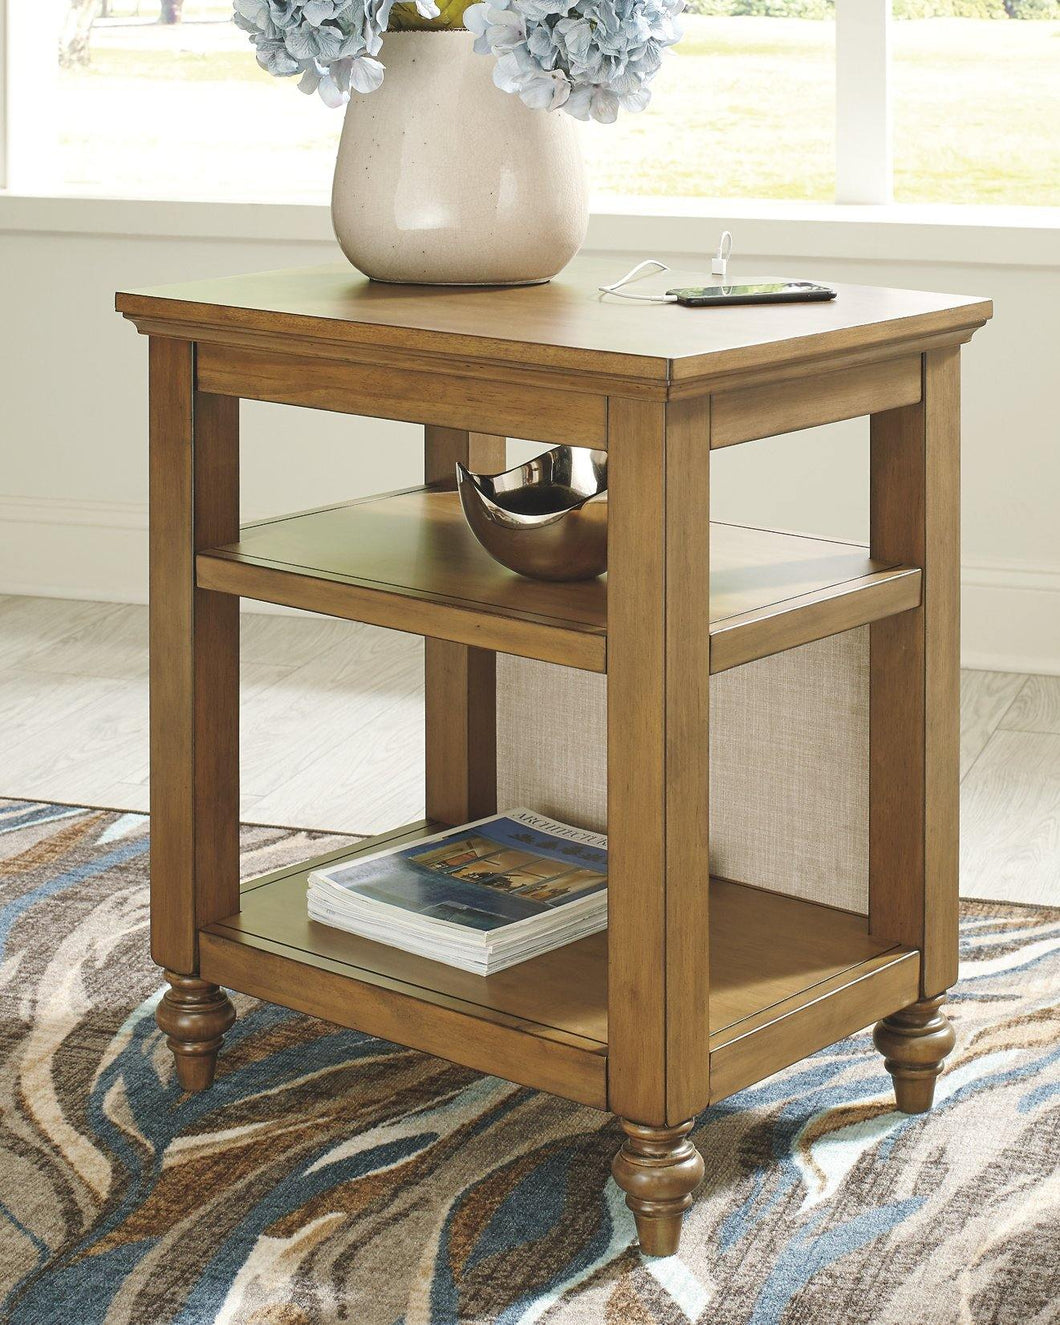 Brickwell Accent Table A4000278 By Ashley Furniture from sofafair